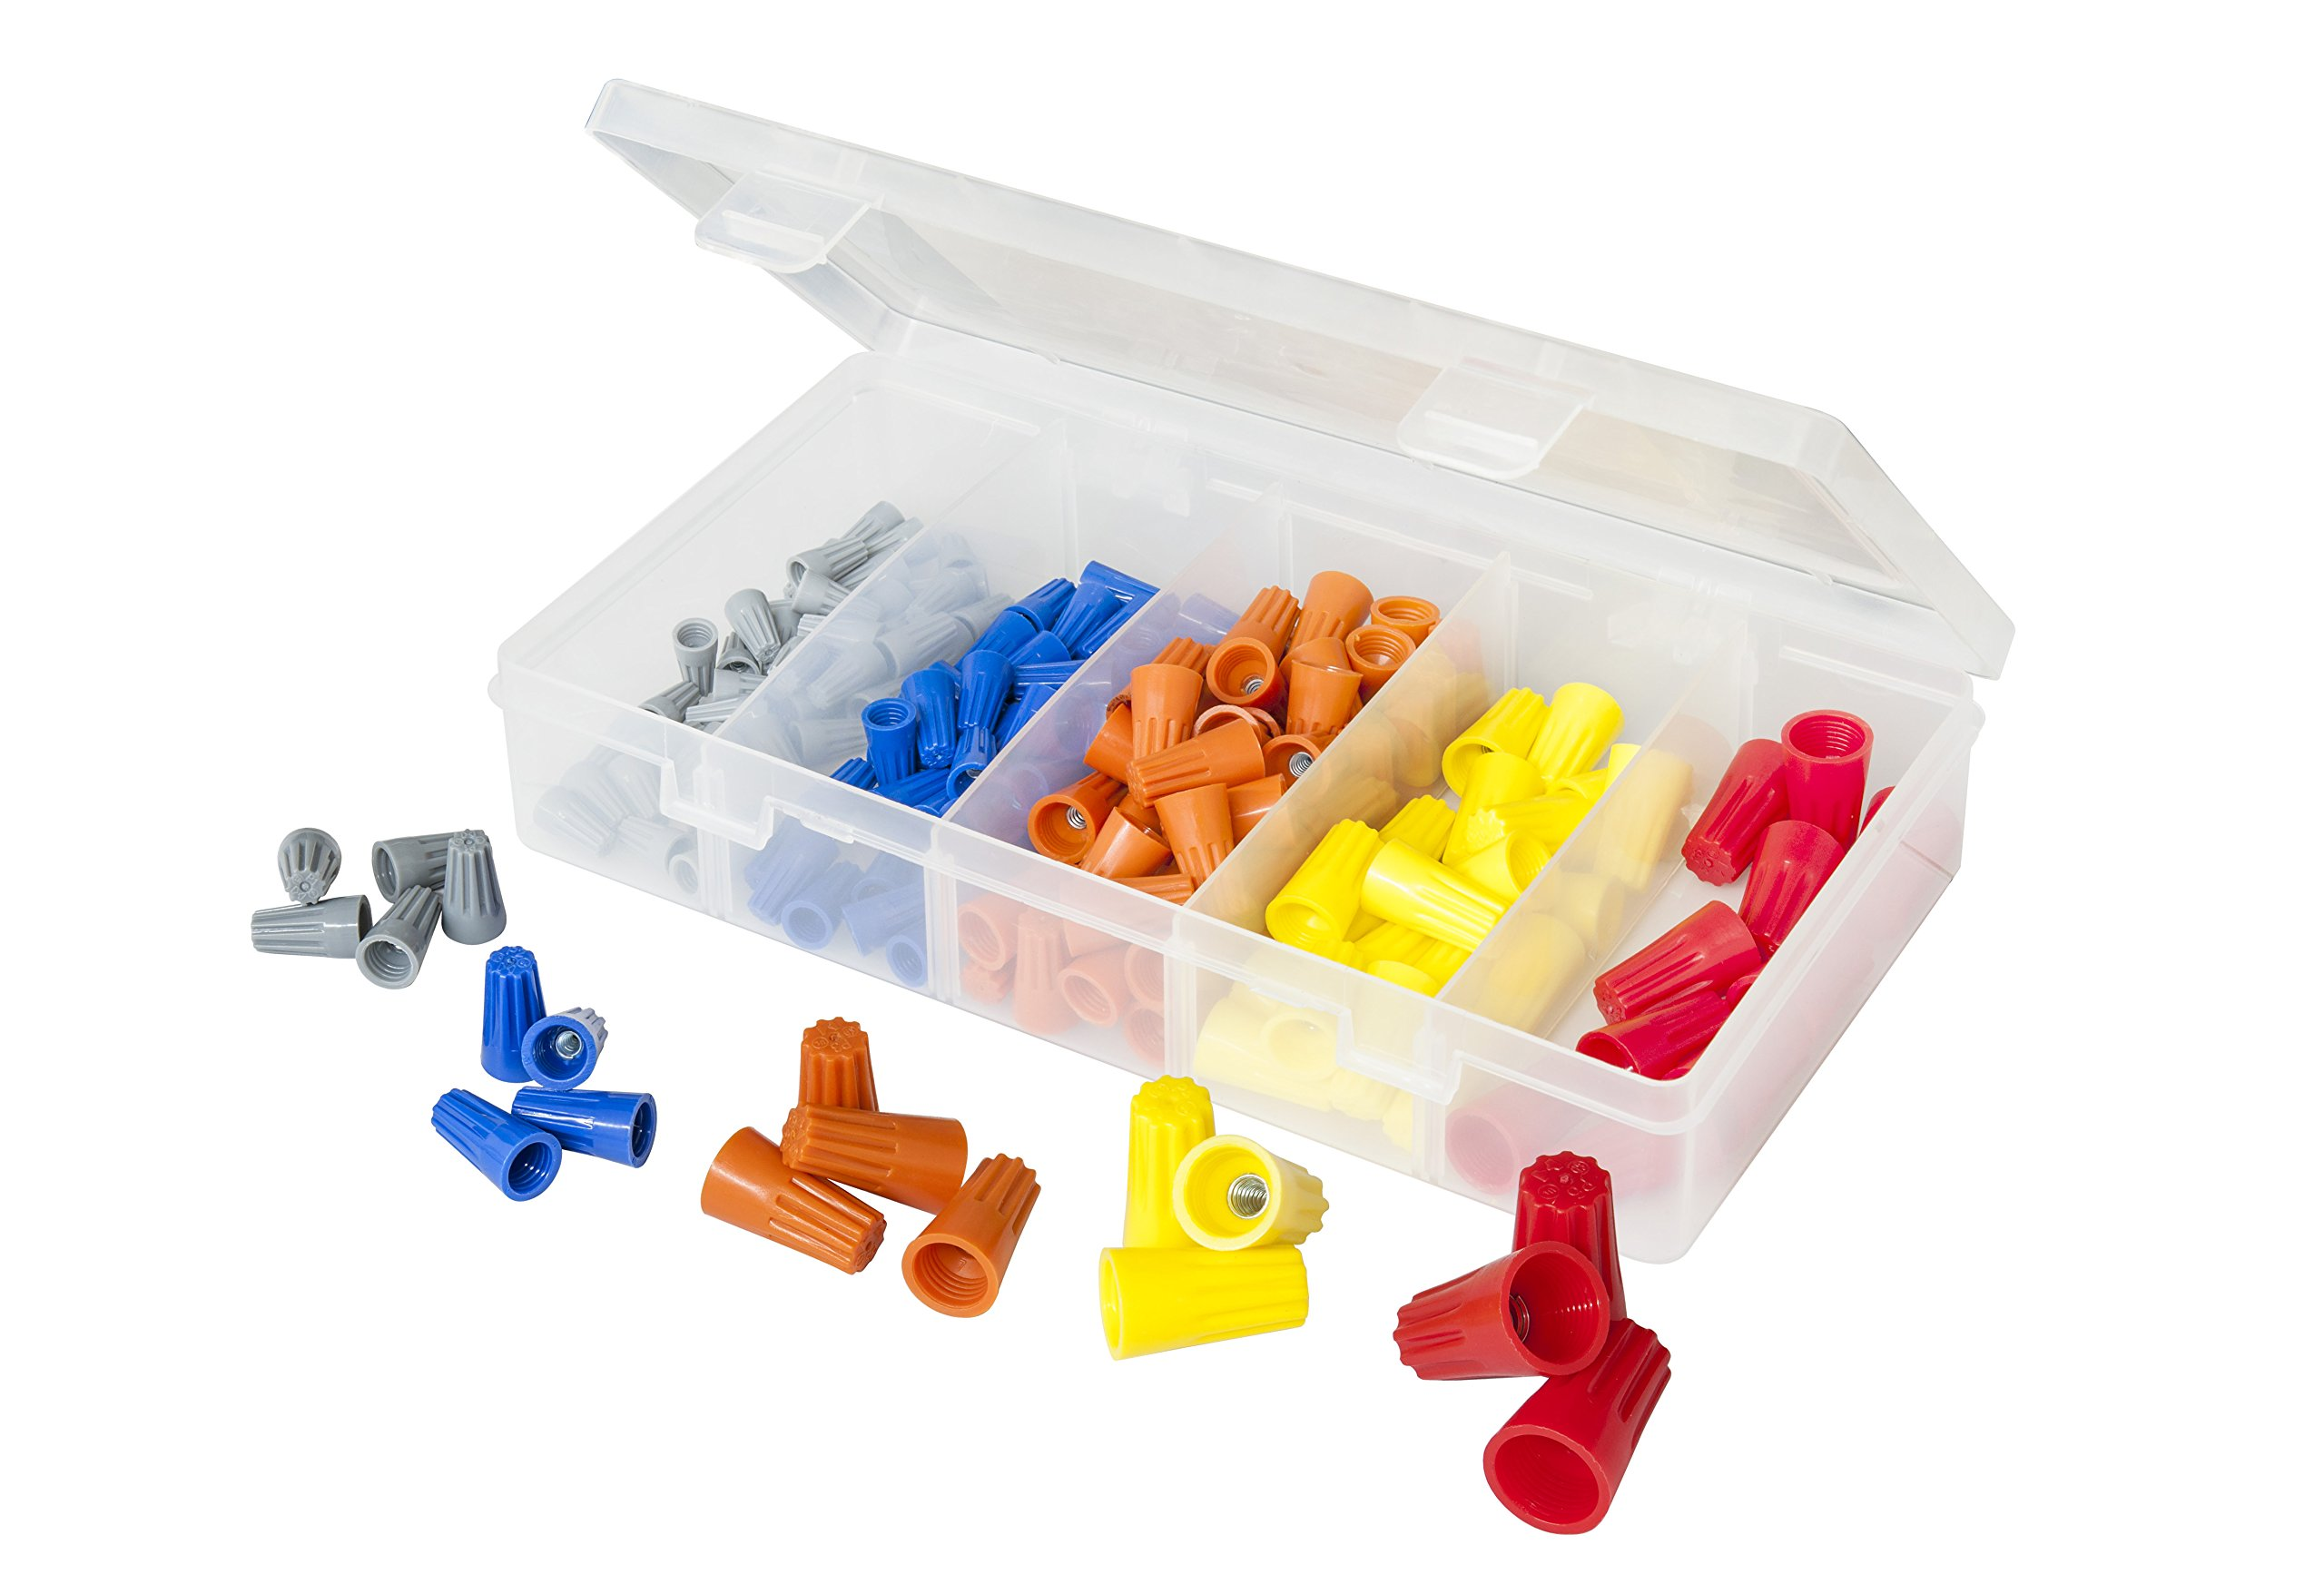 160 PCS Twist-On Wire Connector Assortment - Grey, Blue, Orange, Yellow, and Red Easy Twist-On Ribbed Cap - UL & CSA Listed